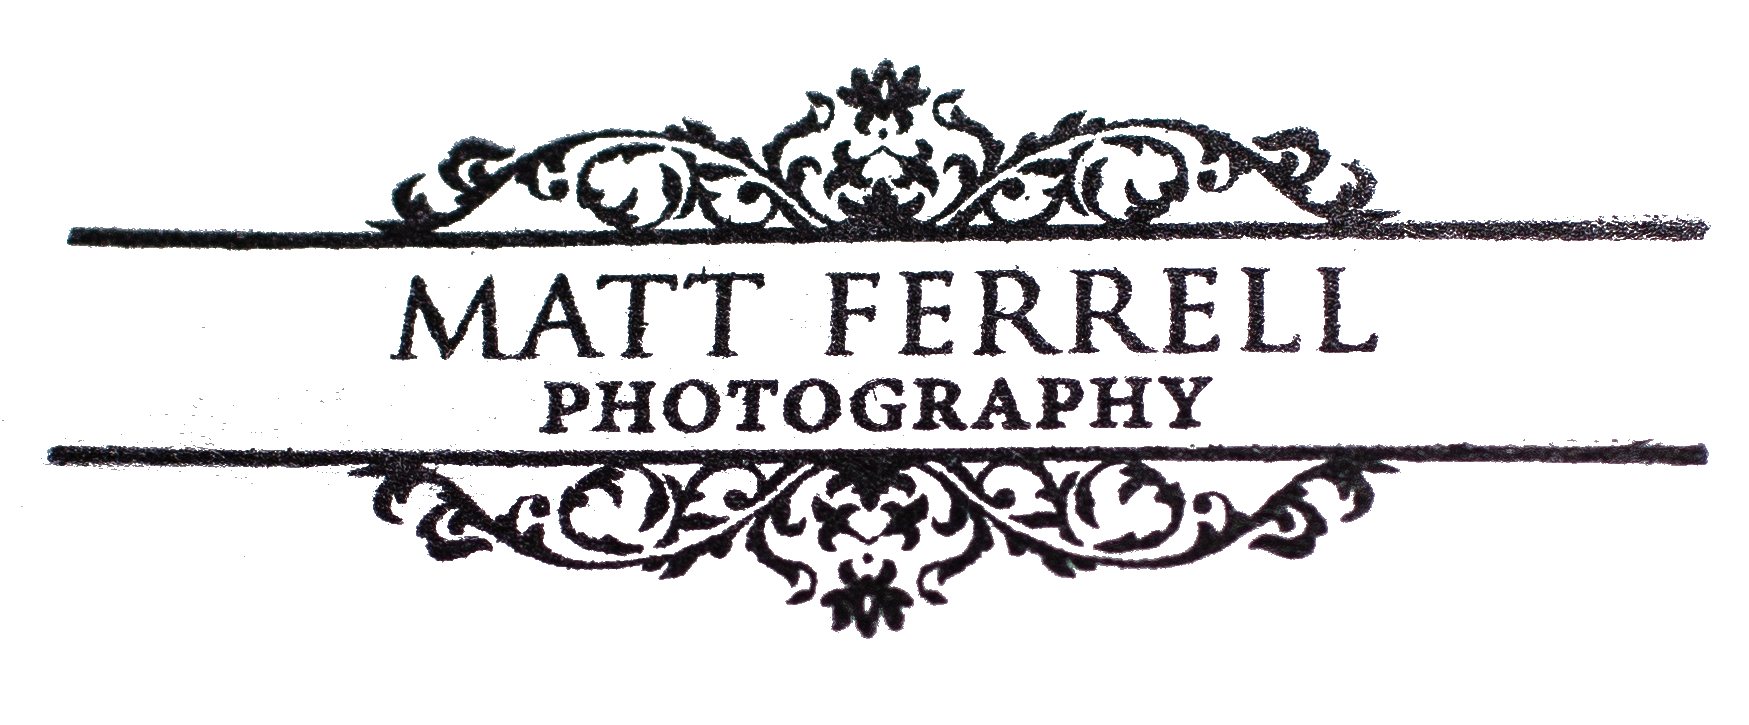 Matt Ferrell Photography